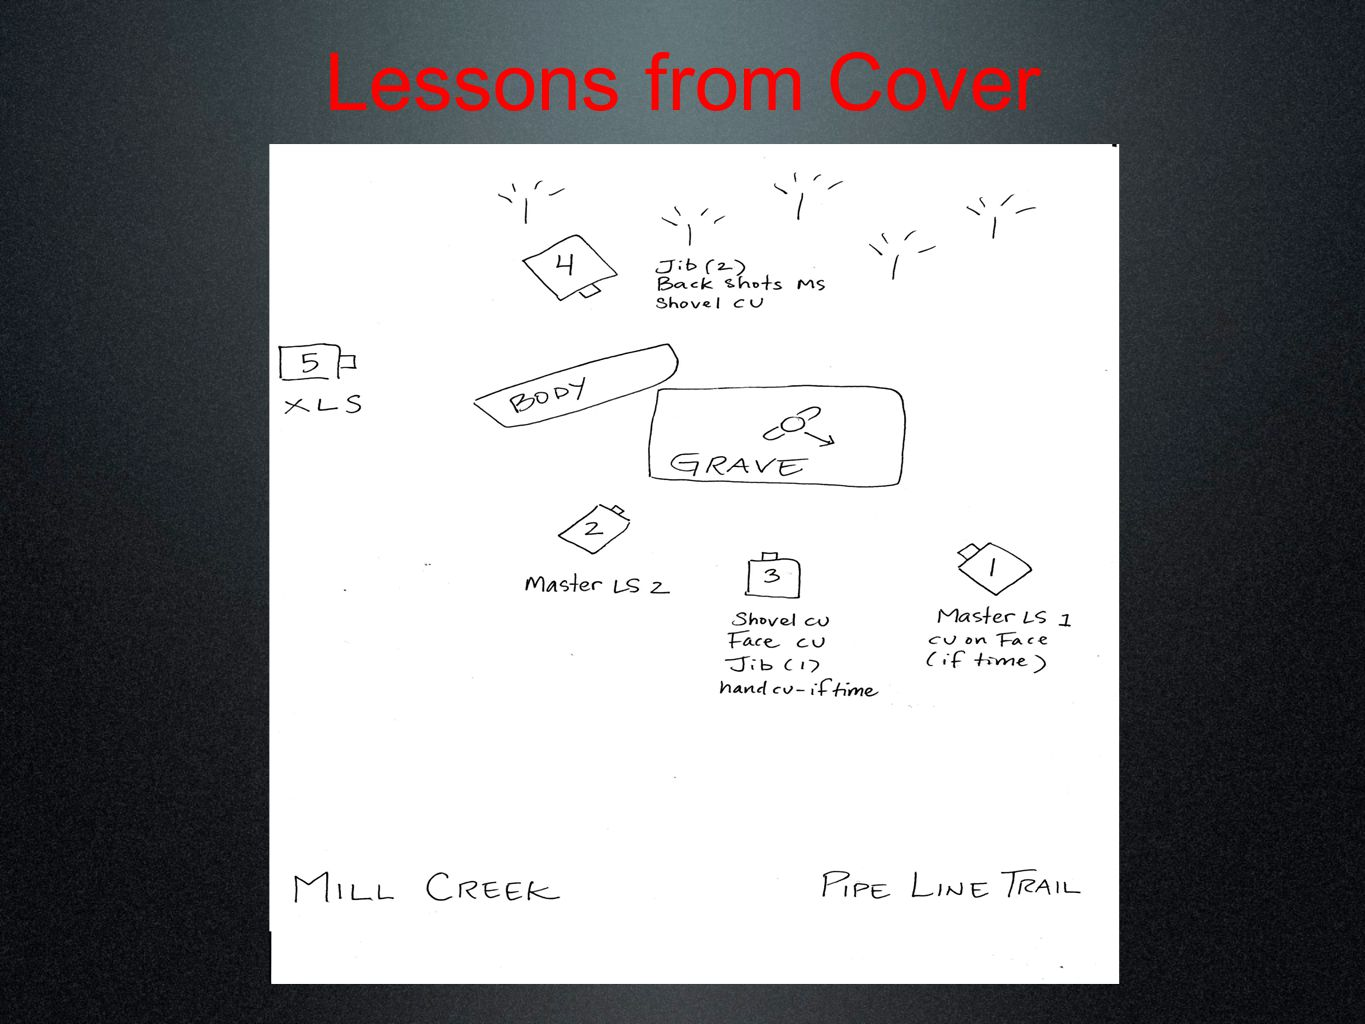 Lessons from Cover